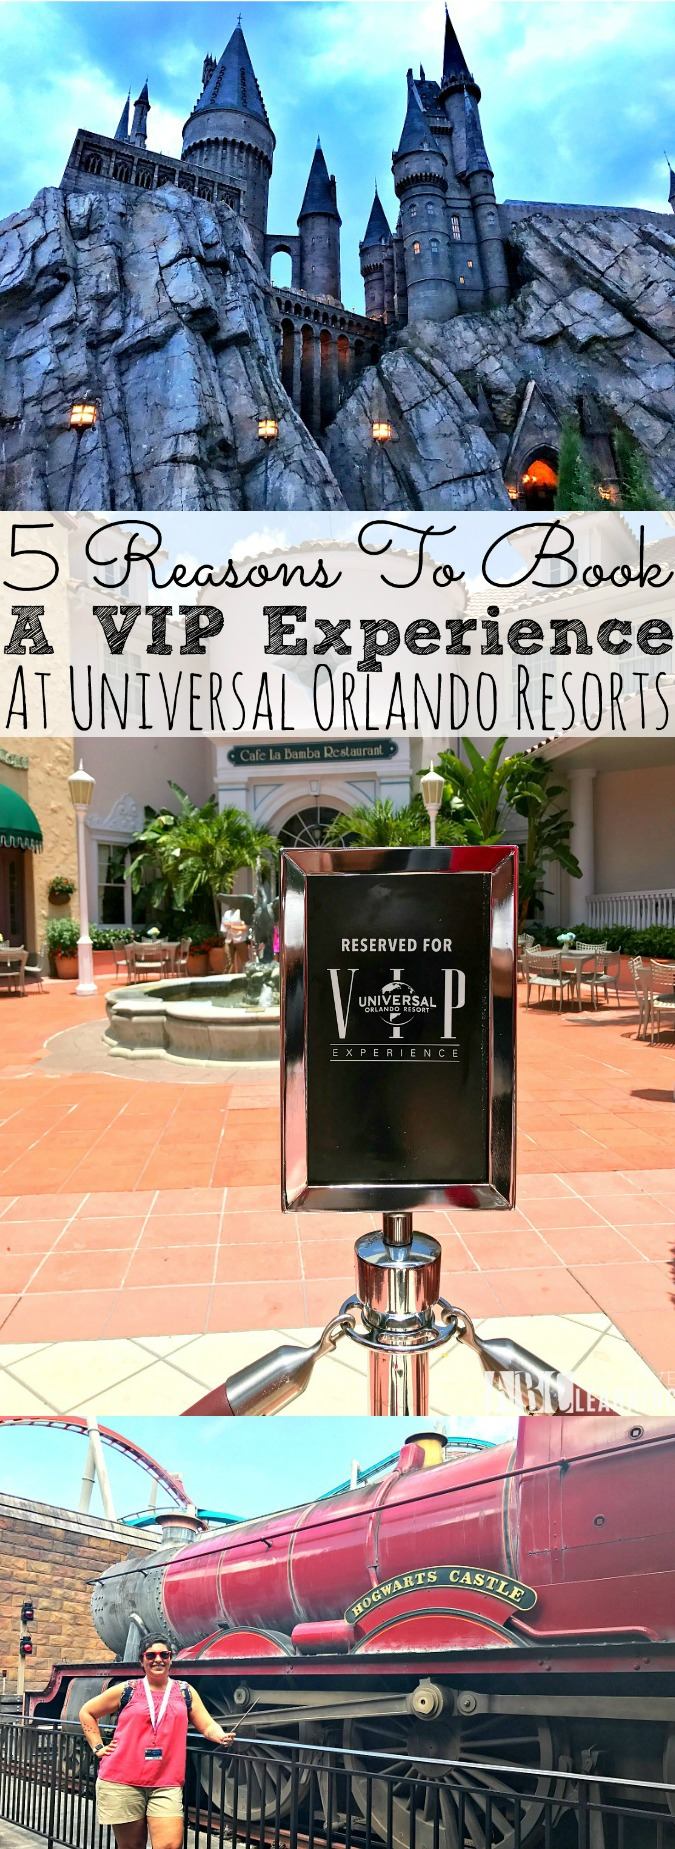 5 Reasons To Book A VIP Experience At Universal Orlando Resorts - simplytodaylife.com